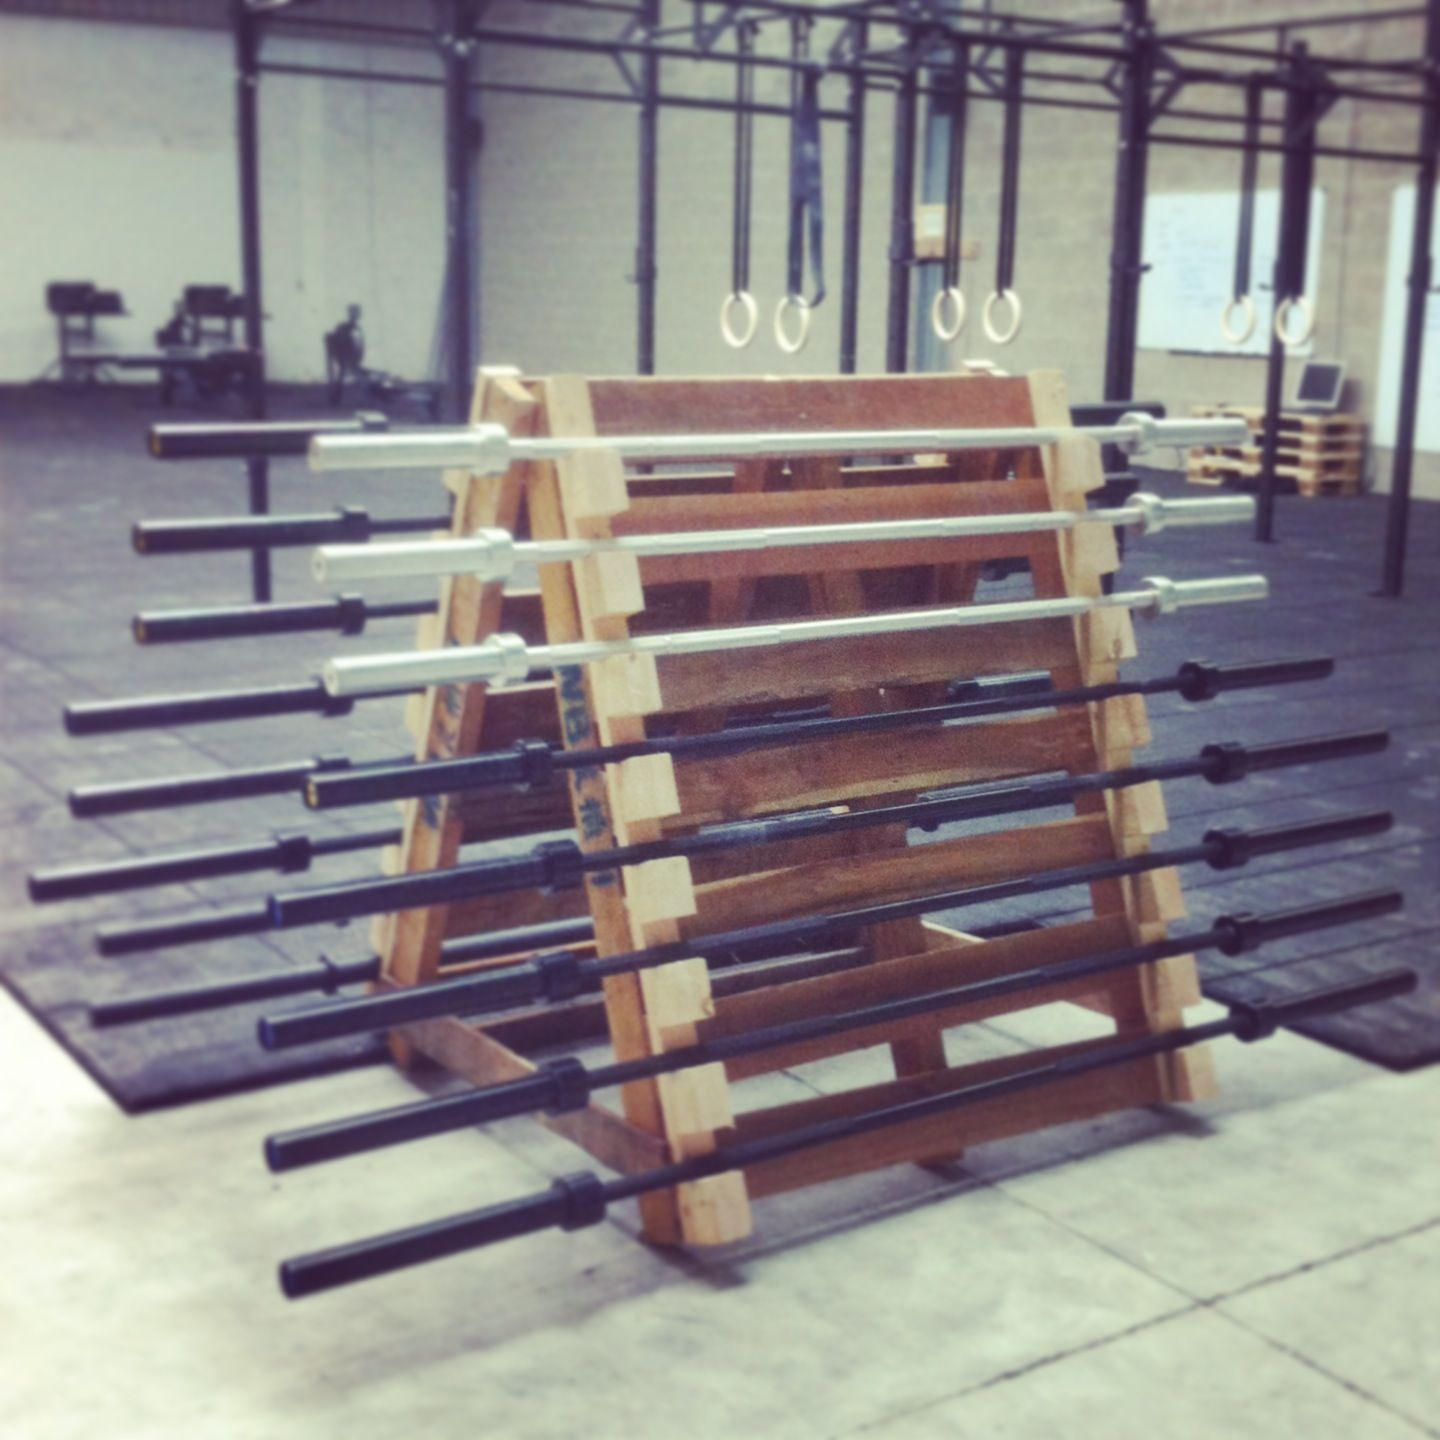 Home Exercise Equipment For Beginners: Pin By Alex Amato On DIY Projects